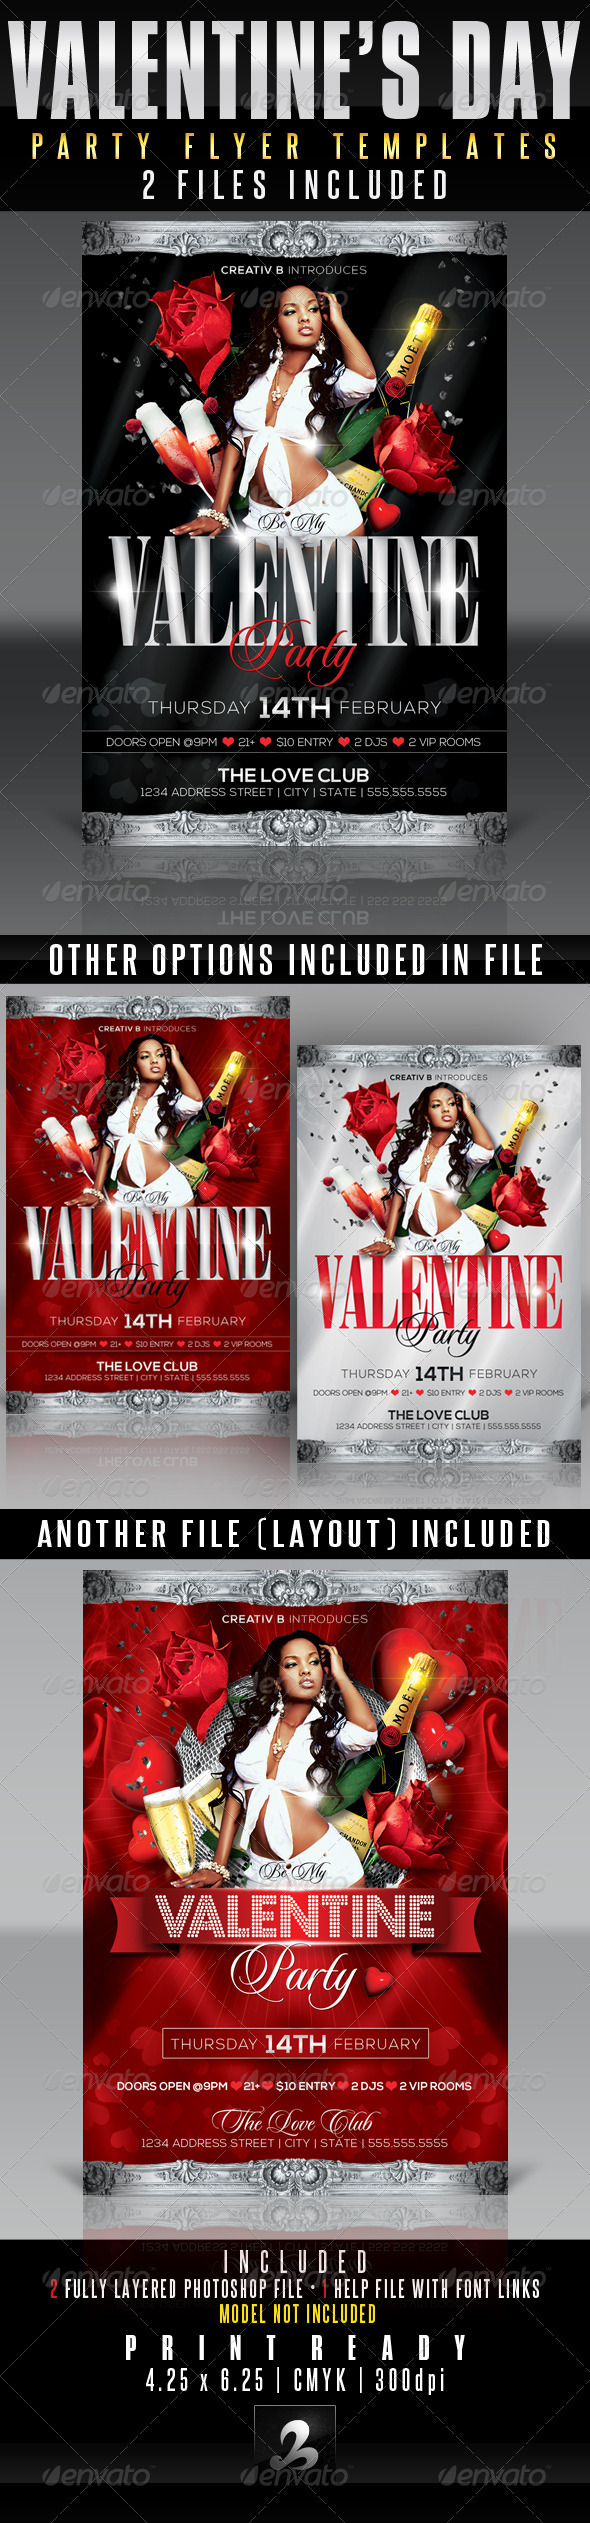 Valentine's Day Party Flyer Templates - Clubs & Parties Events